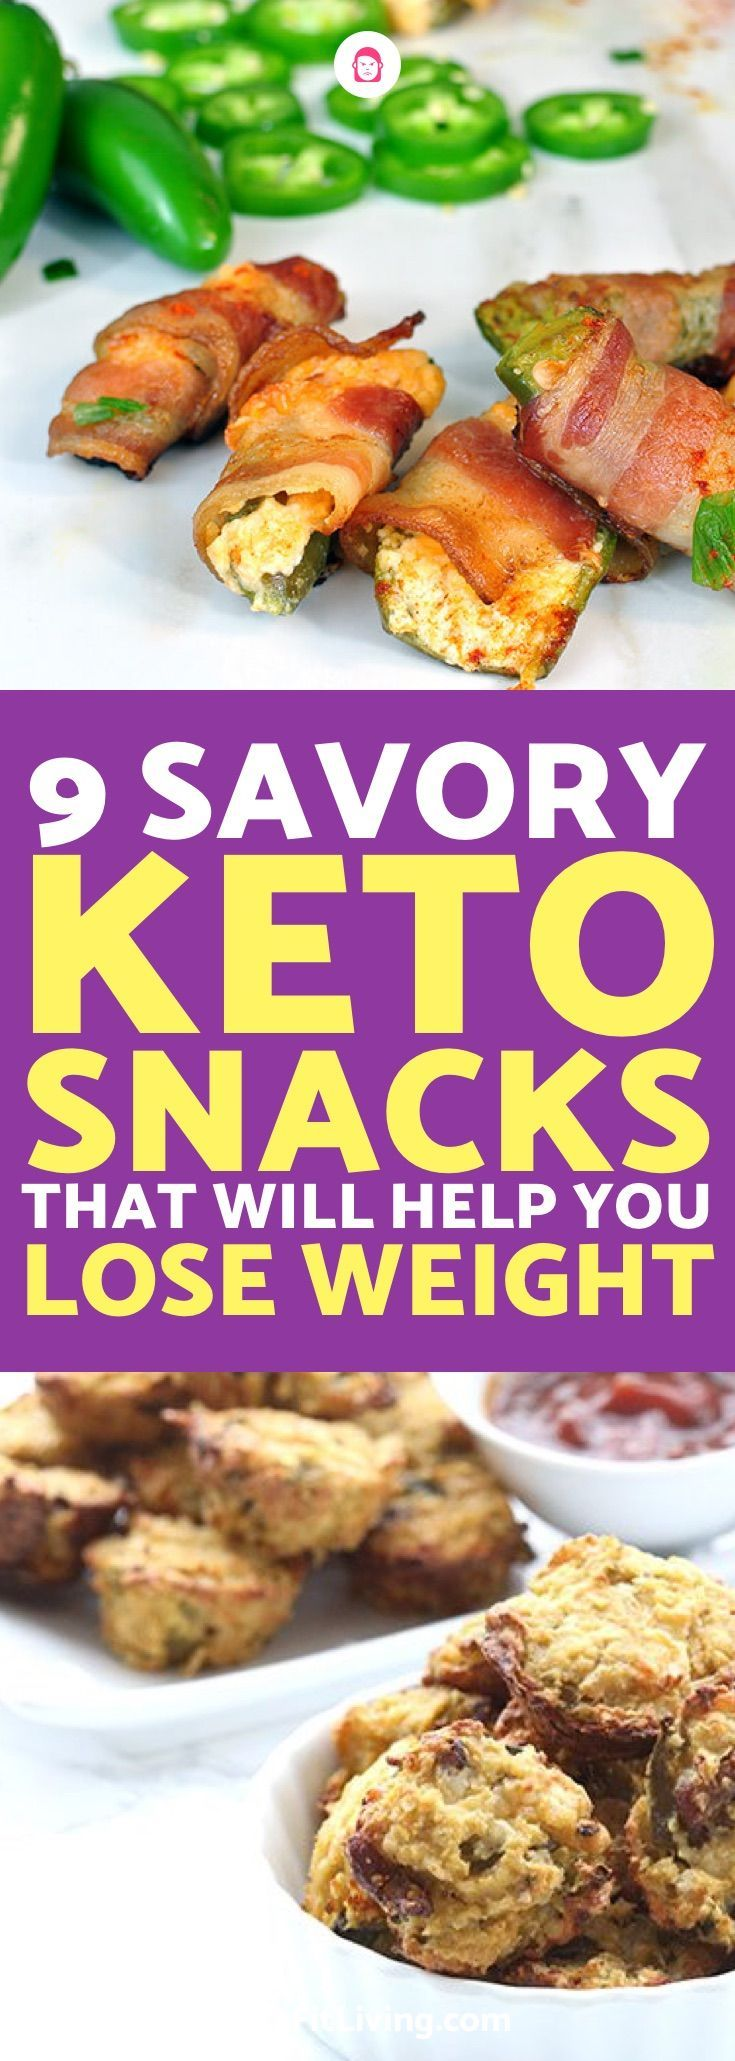 What food should you avoid when trying to lose weight photo 10